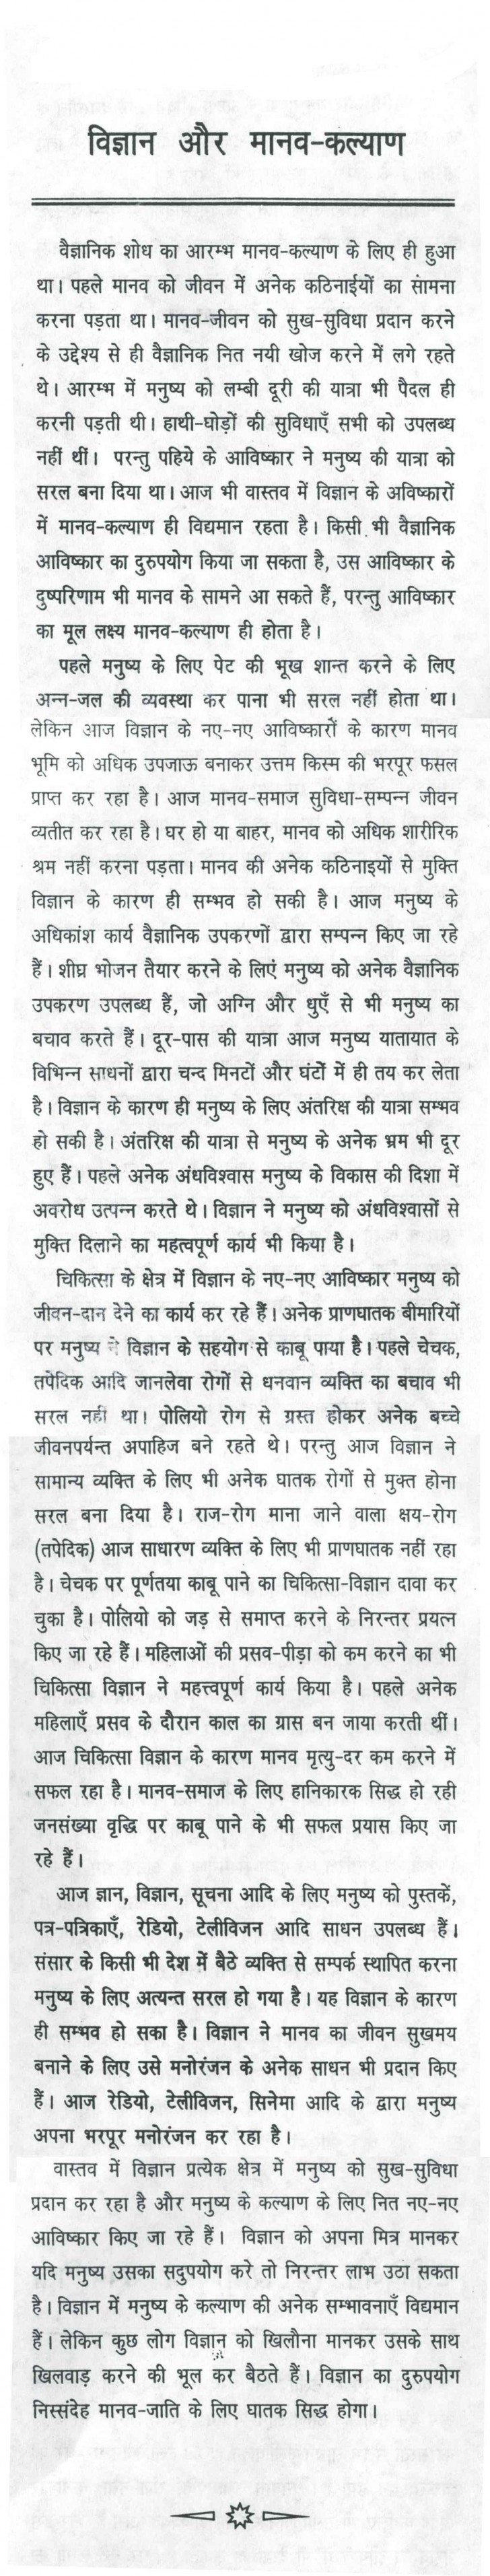 019 Advantage And Disadvantage Of Science Essay Example Benefit Education On Importance In Hindi Advantages Disadvantages Higher 10061 Benefits Shocking With Quotes Language 728